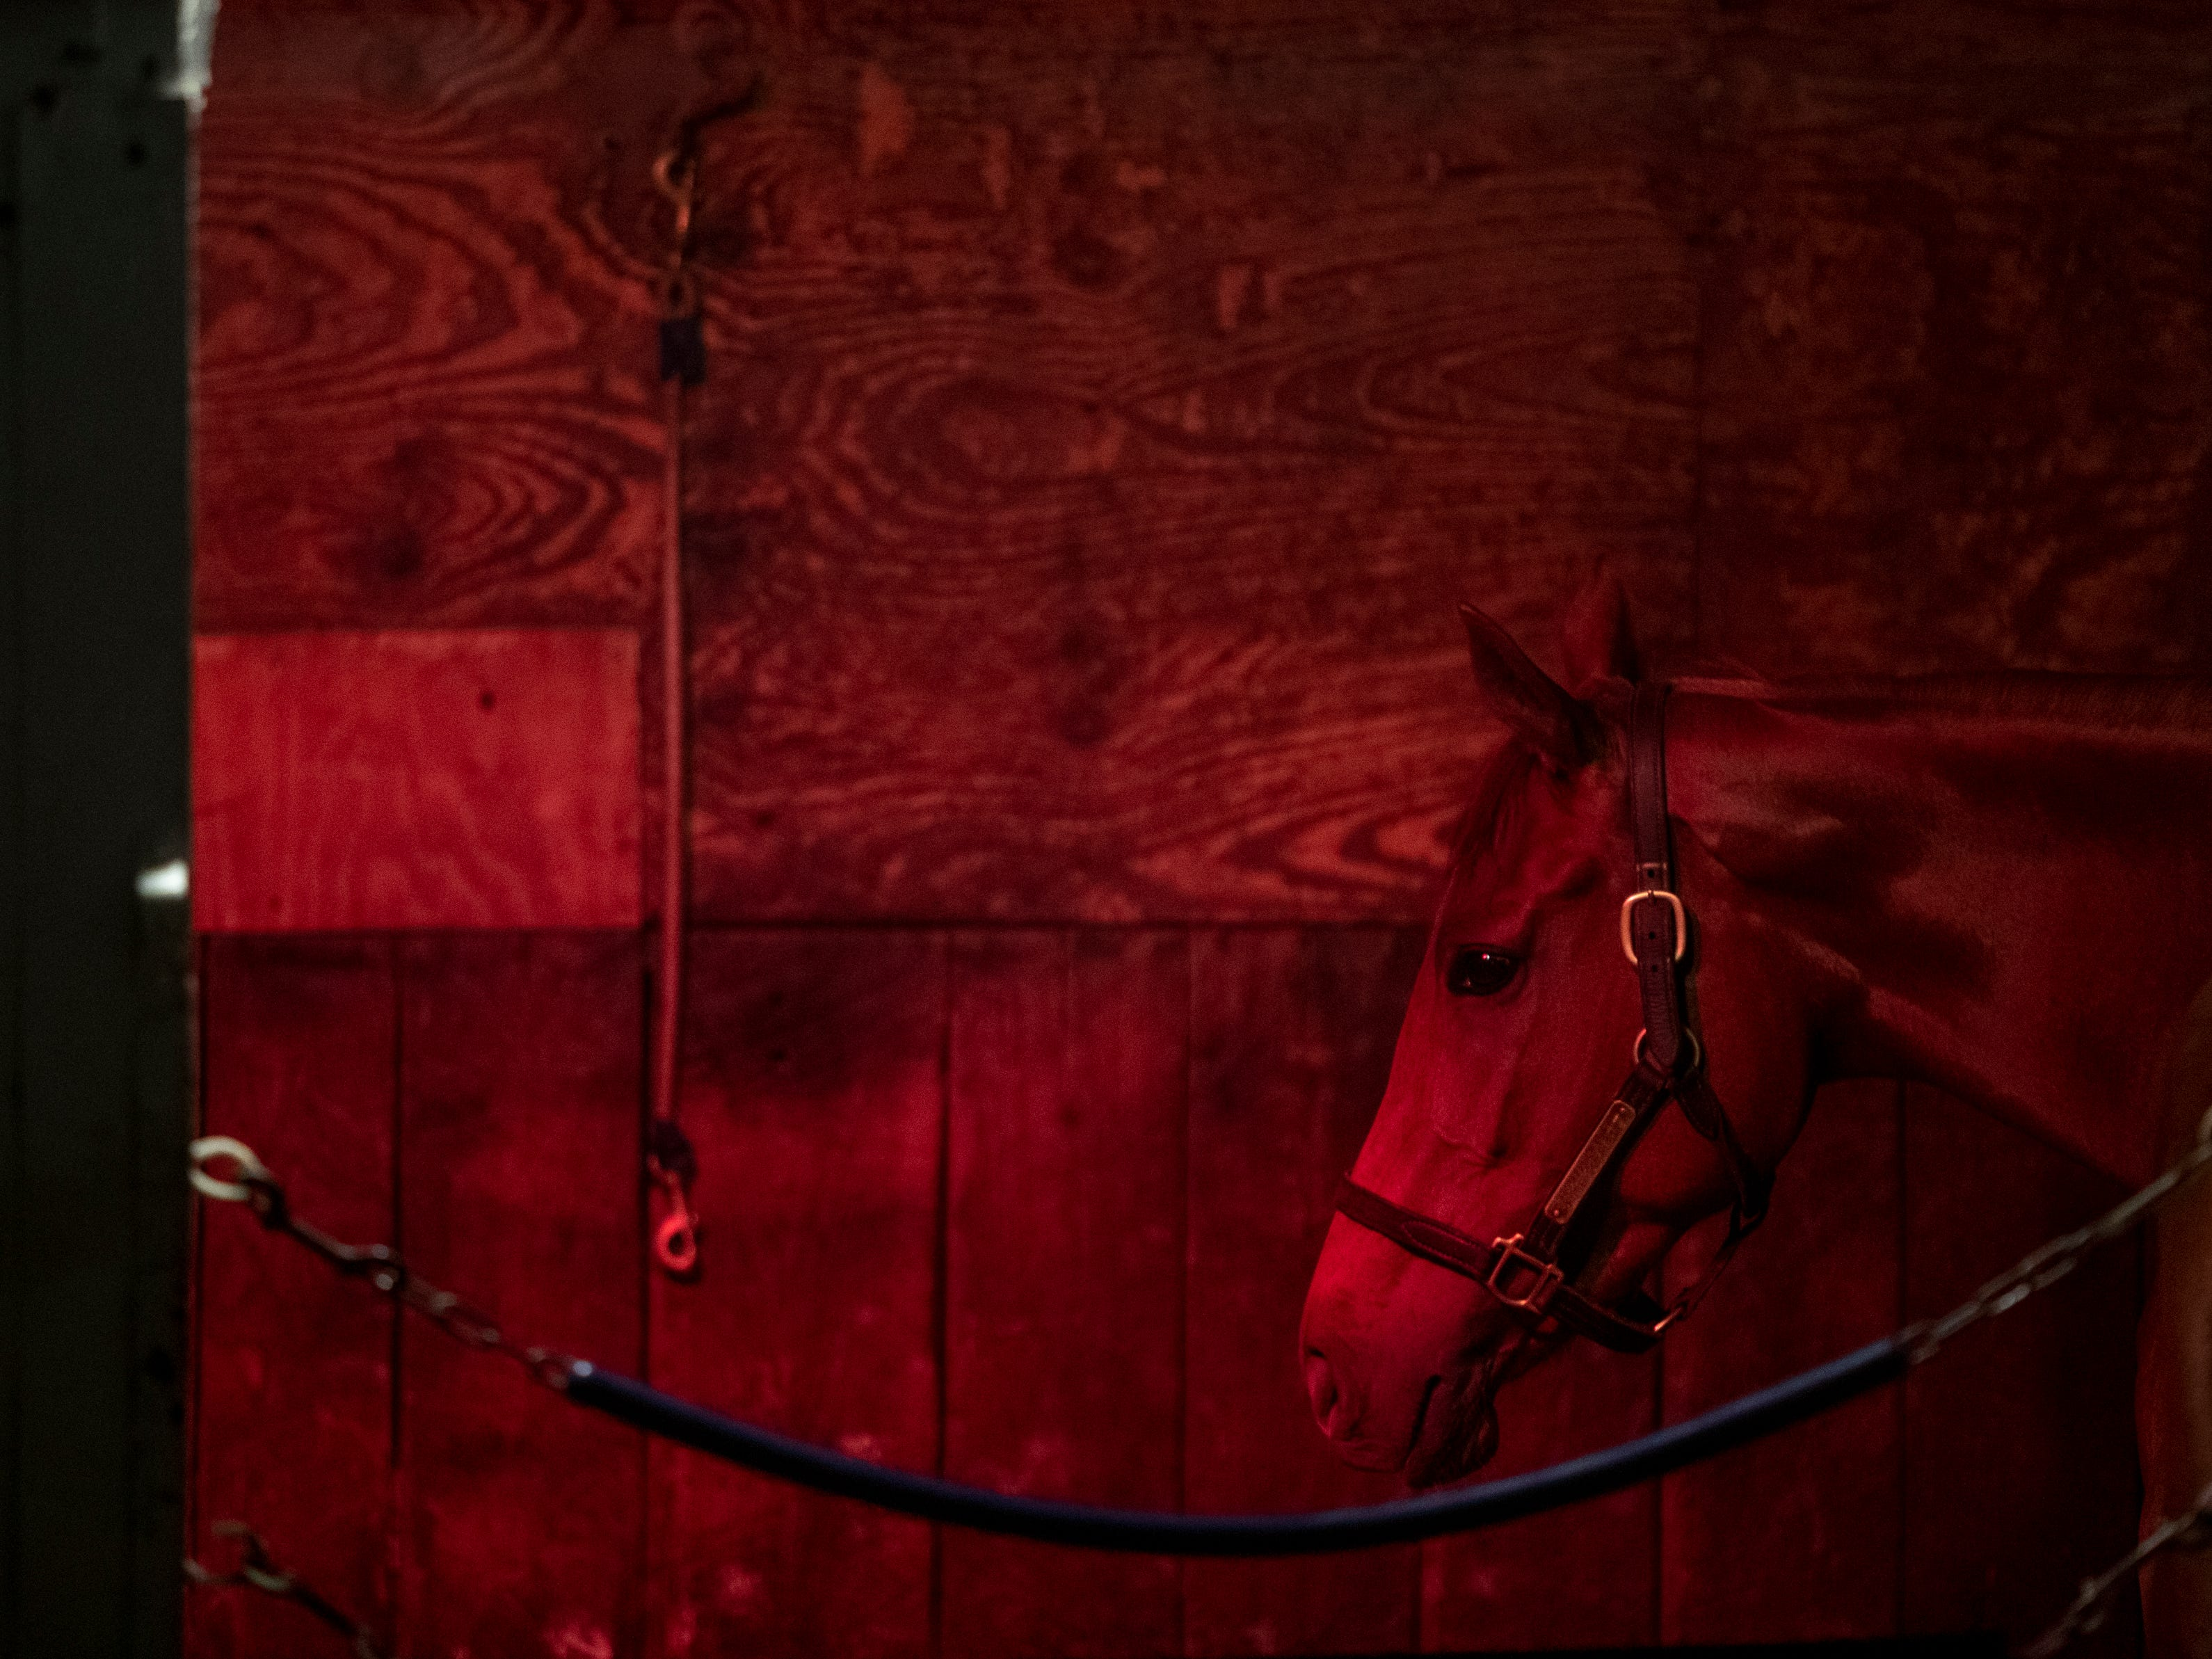 A heat lamp keeps a horse warm in its stall in the Bernie Flint stable at Churchill Downs. April 24, 2019